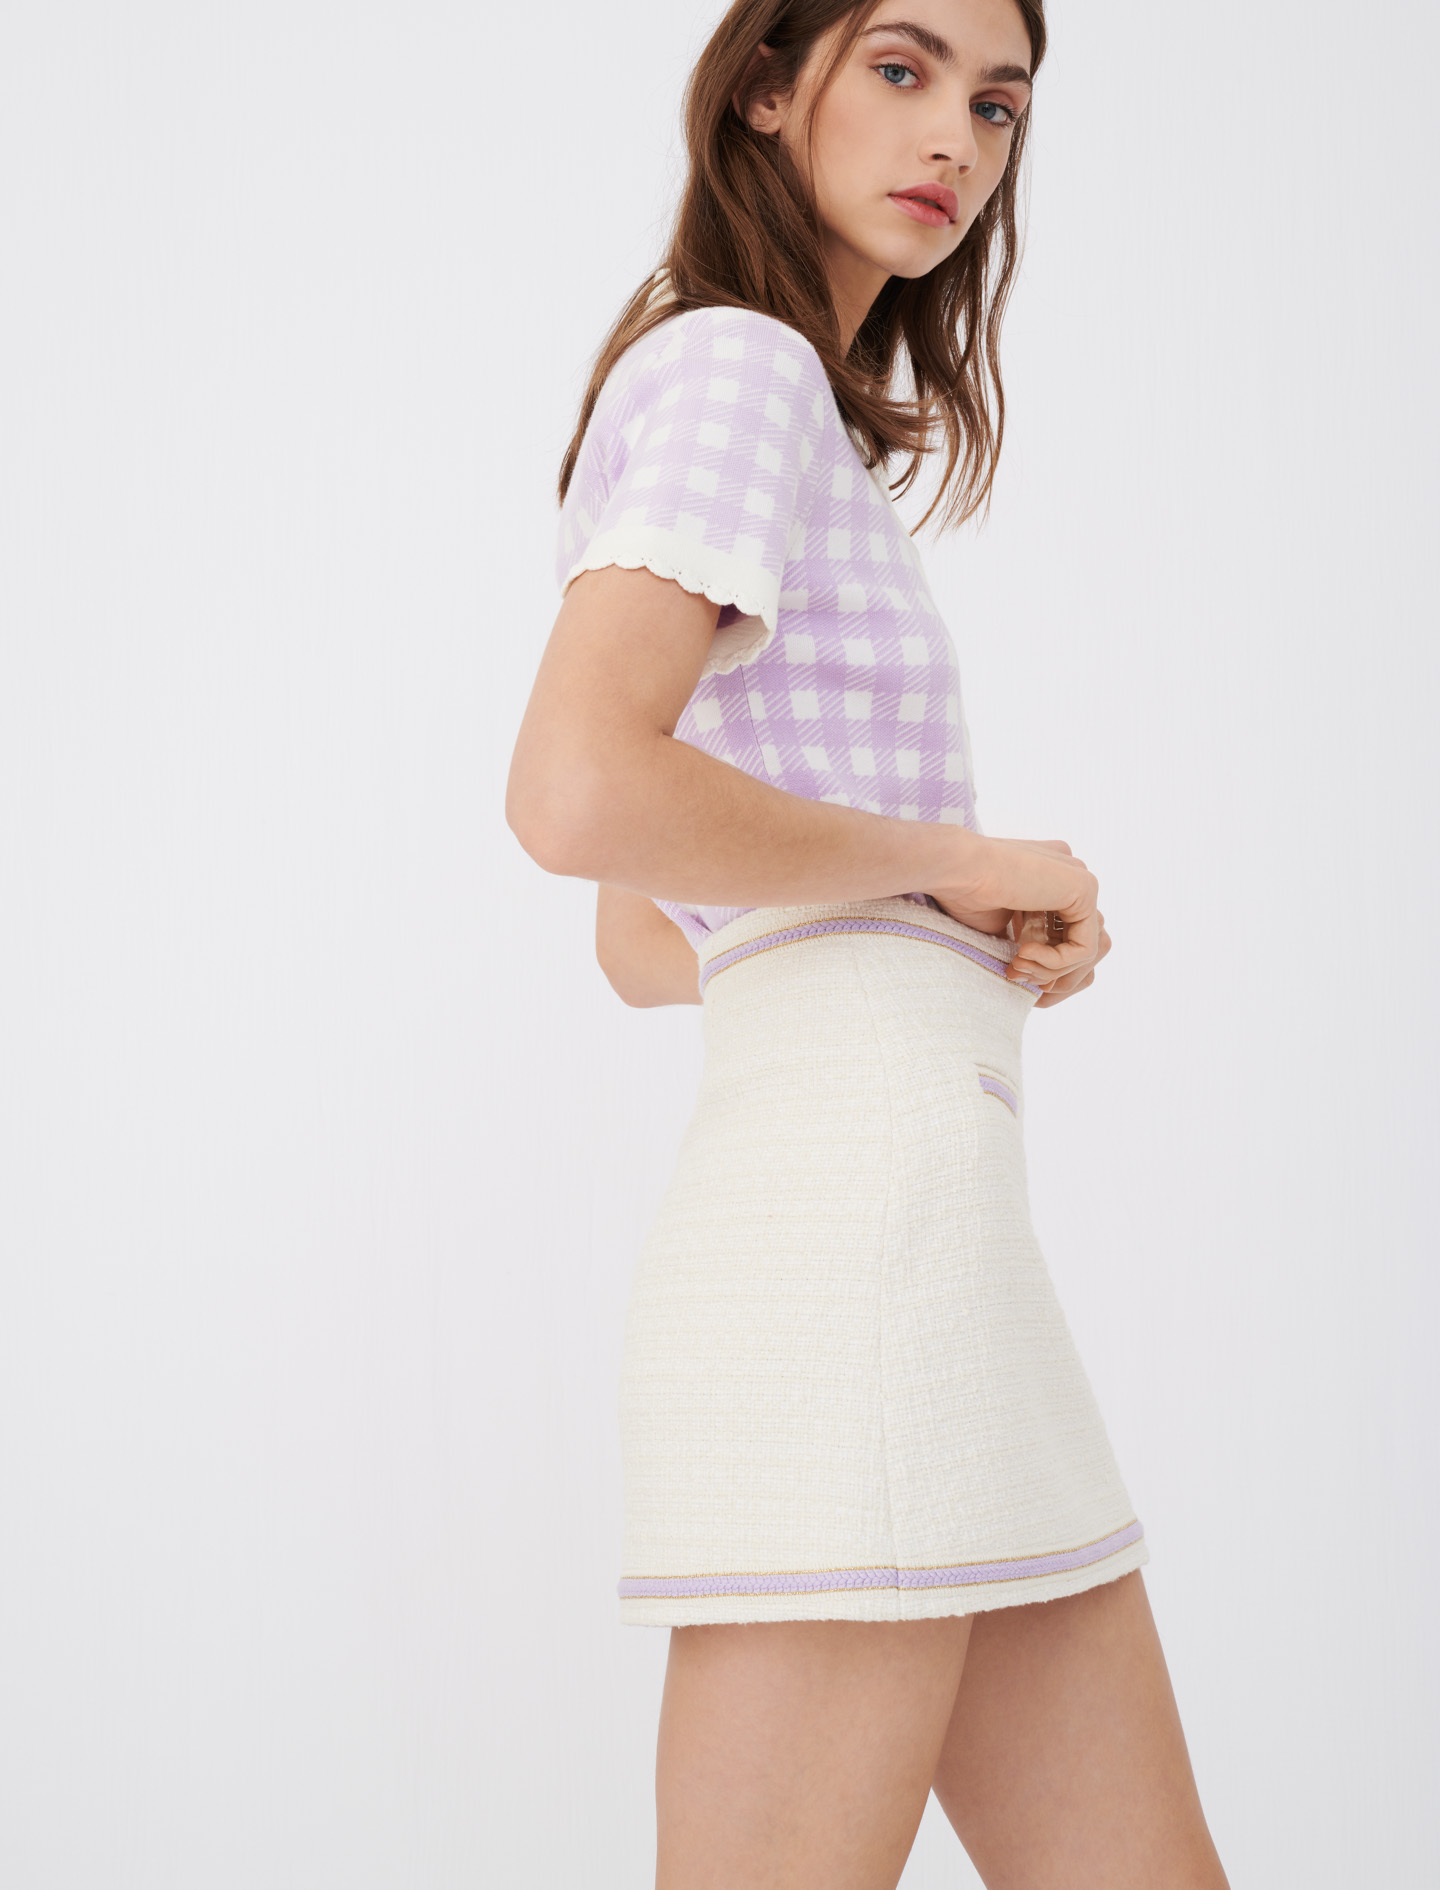 Ecru tweed skirt with contrast piping by maje paris